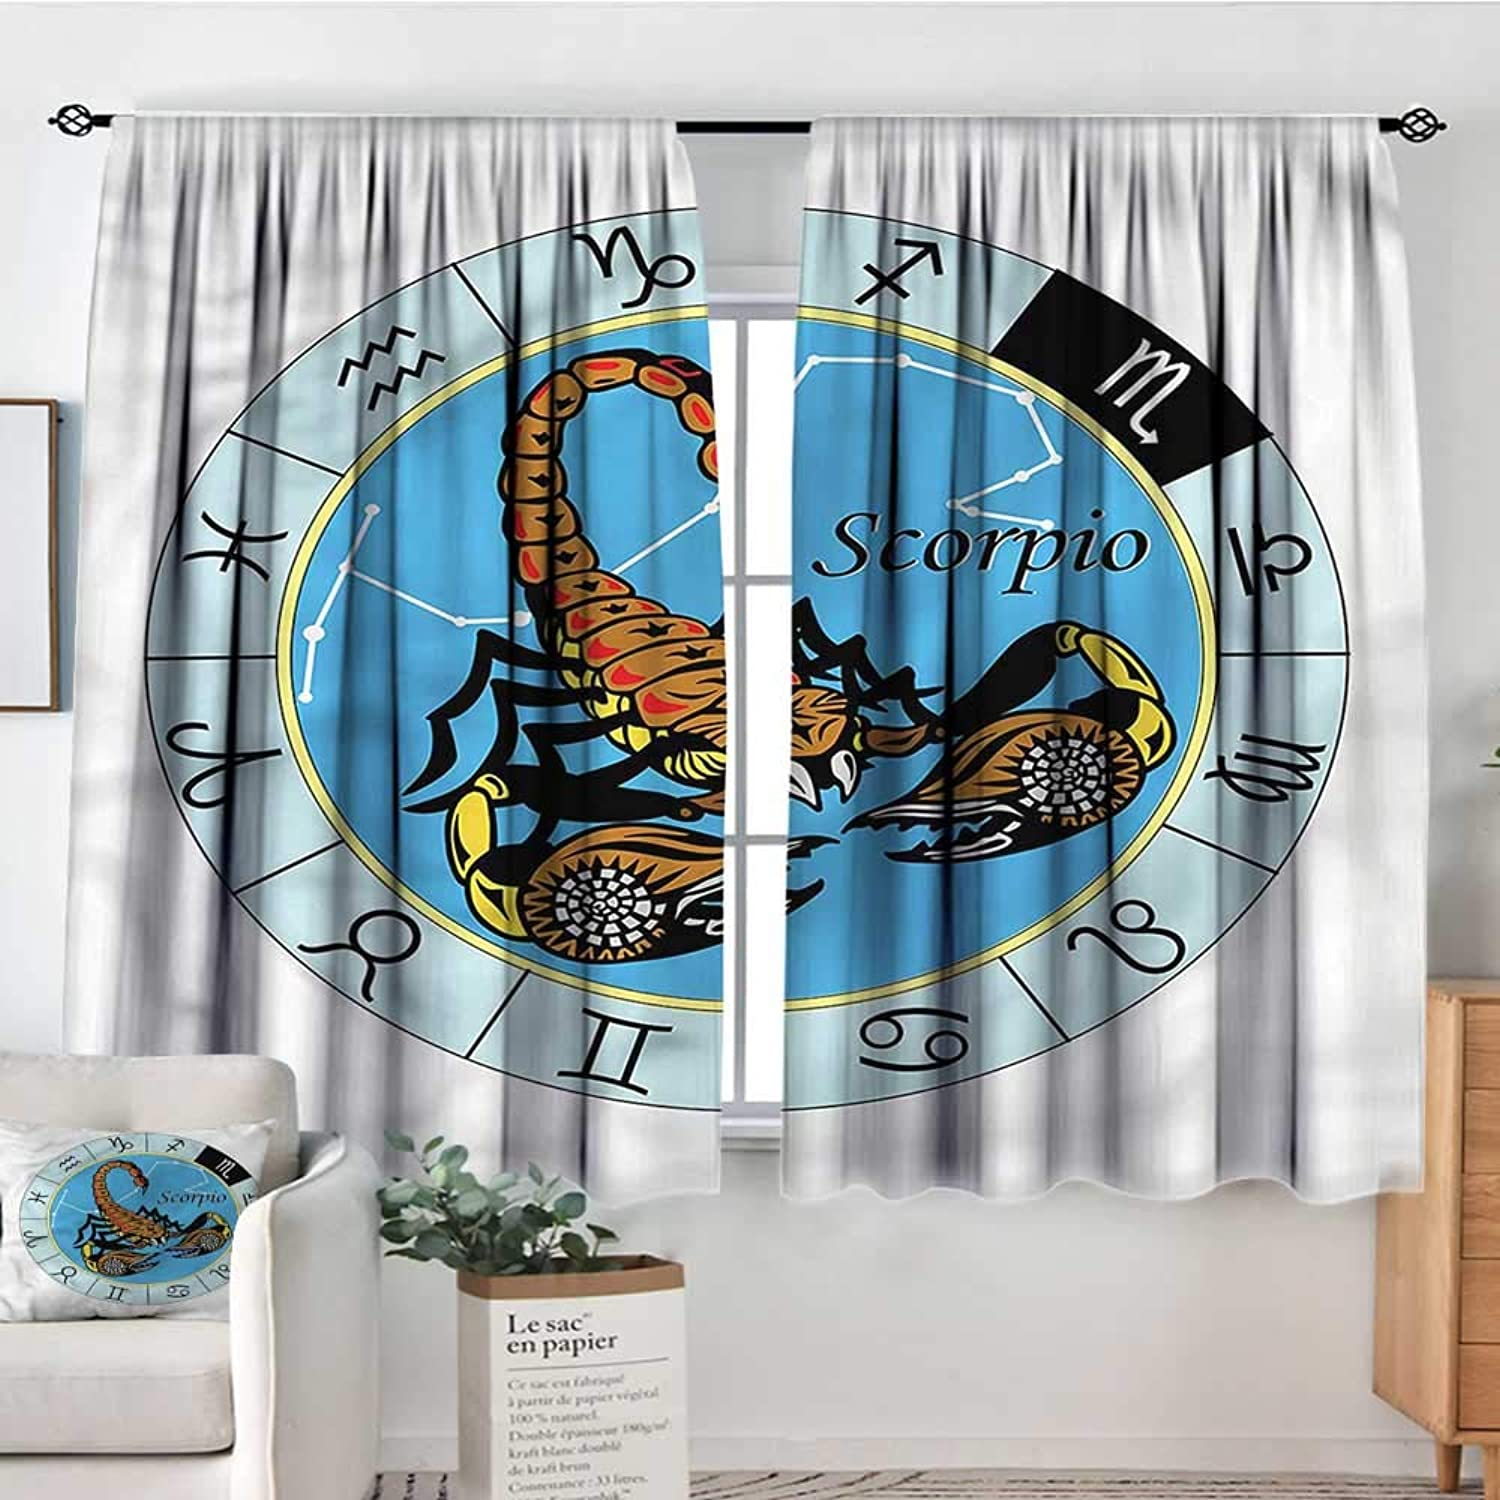 Familytaste Zodiac Scorpio,Rod Curtains Chart and Sign 42 X72  Backout Curtains for Kids Iving Room